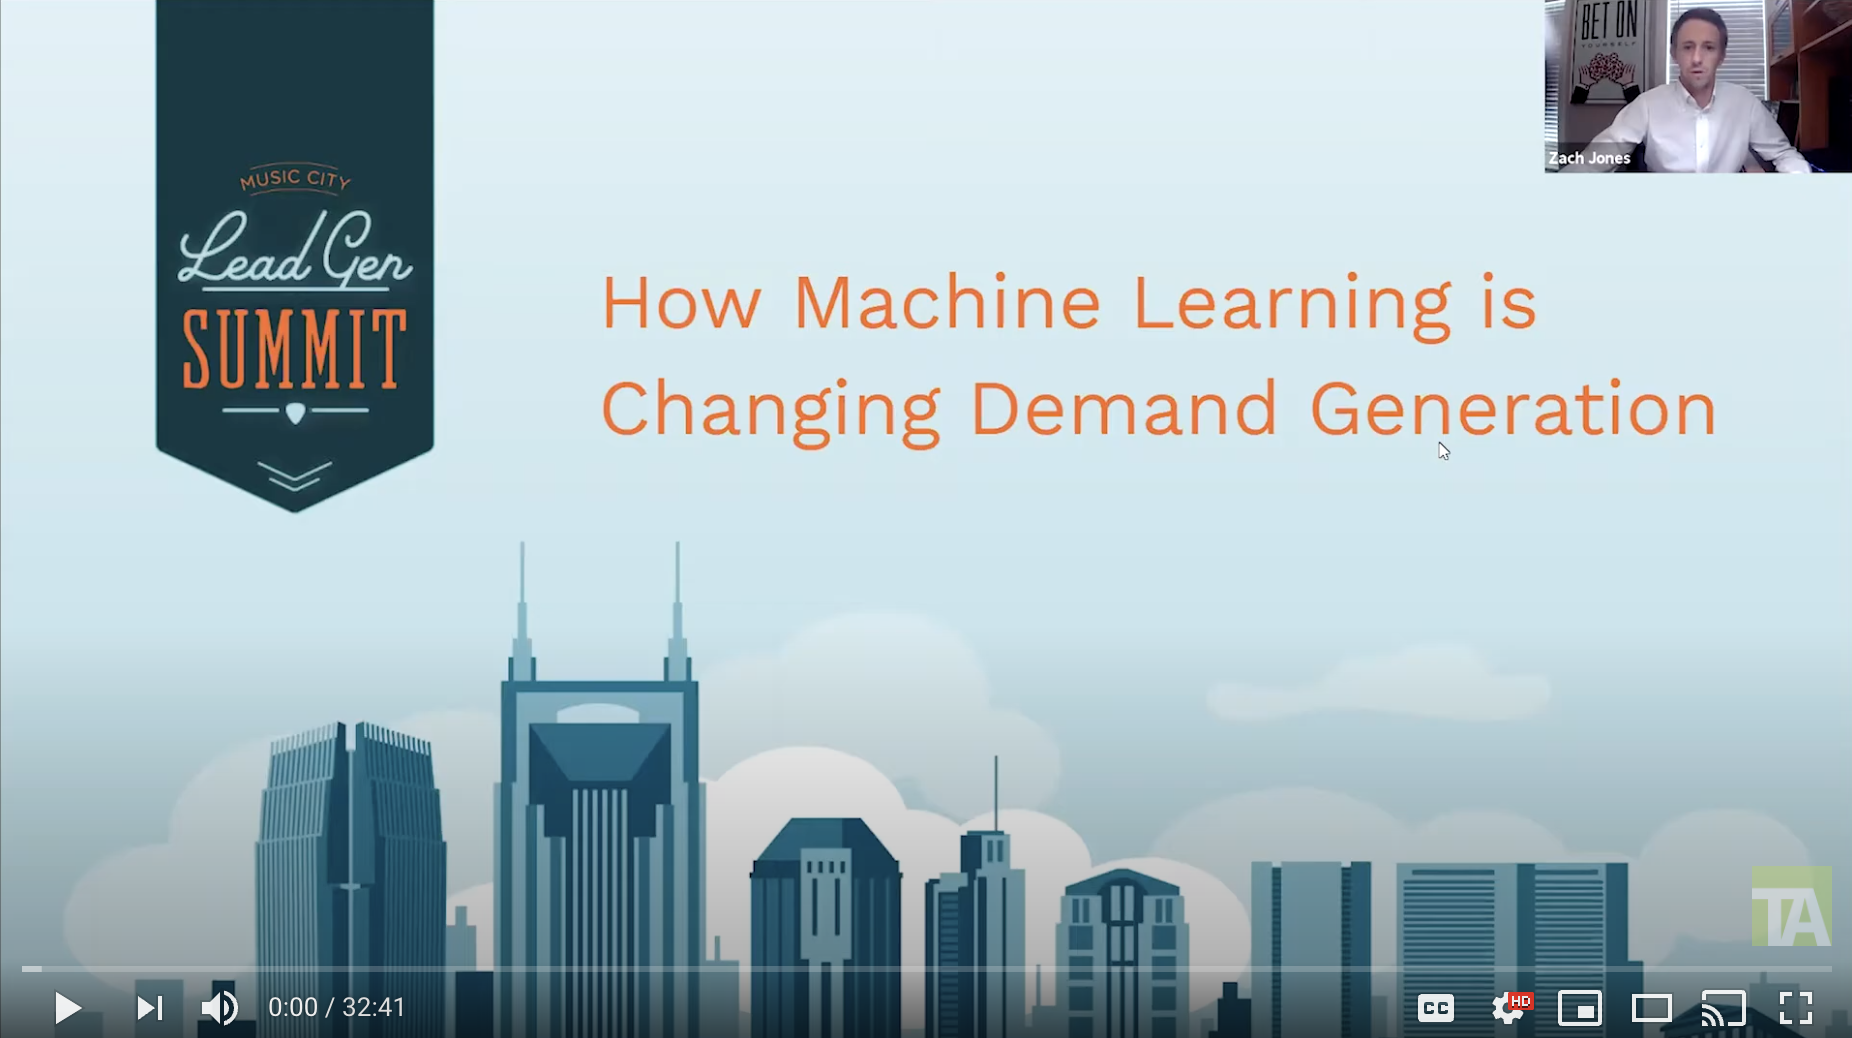 TechnologyAdvice Video Recording: How Machine Learning is Changing Demand Generation